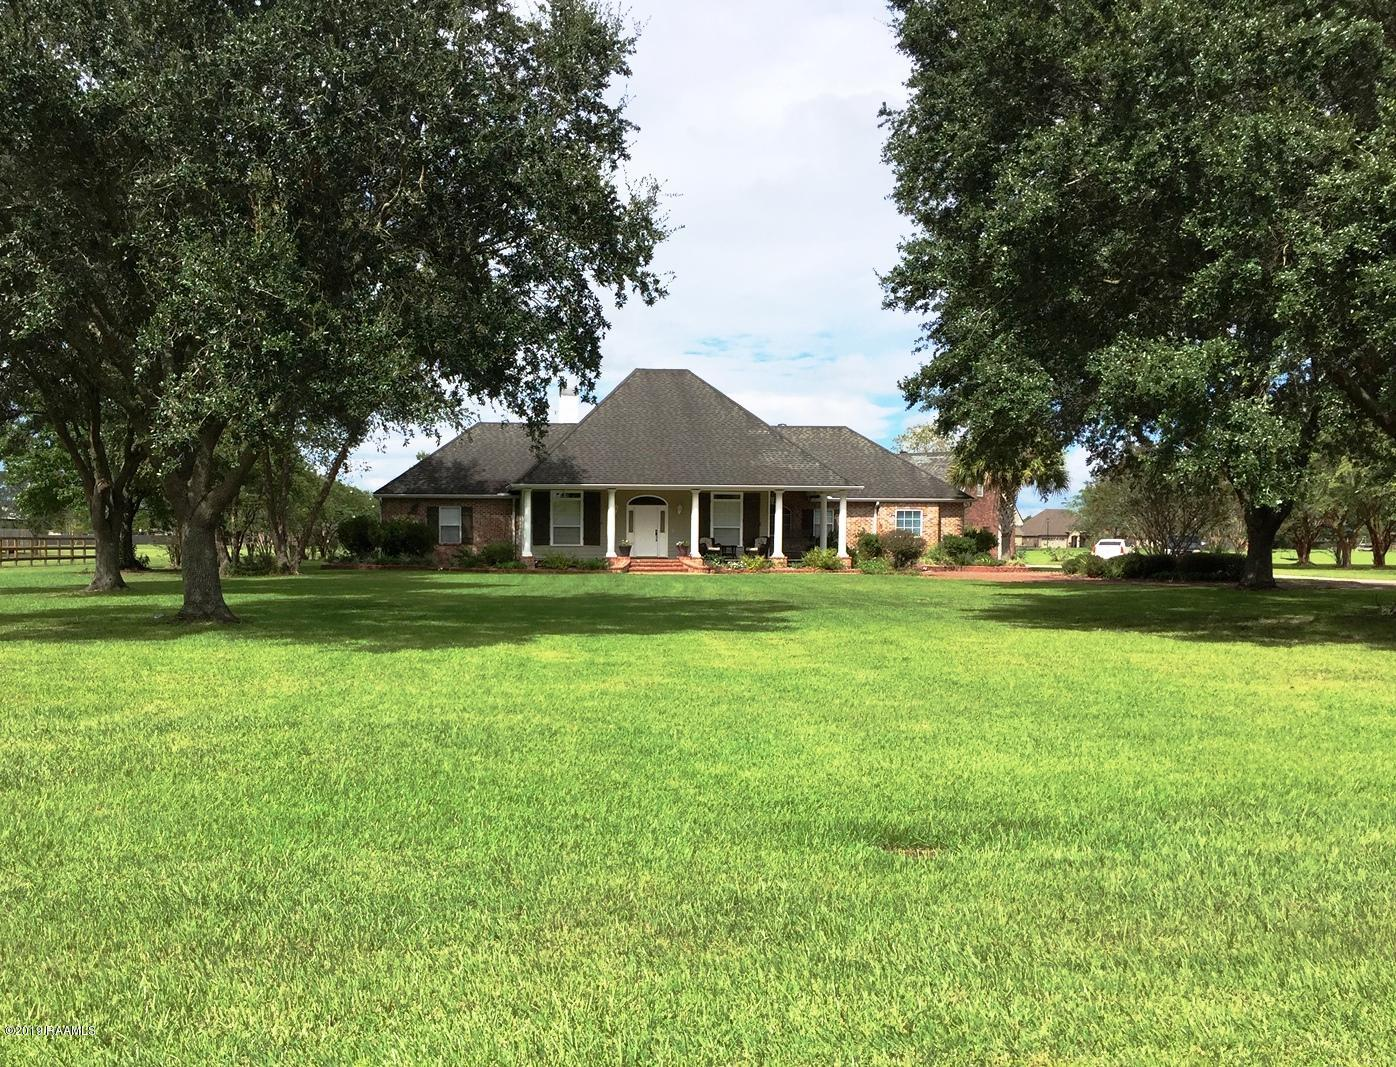 406 Copperfield Way, Youngsville, LA 70592 Photo #1